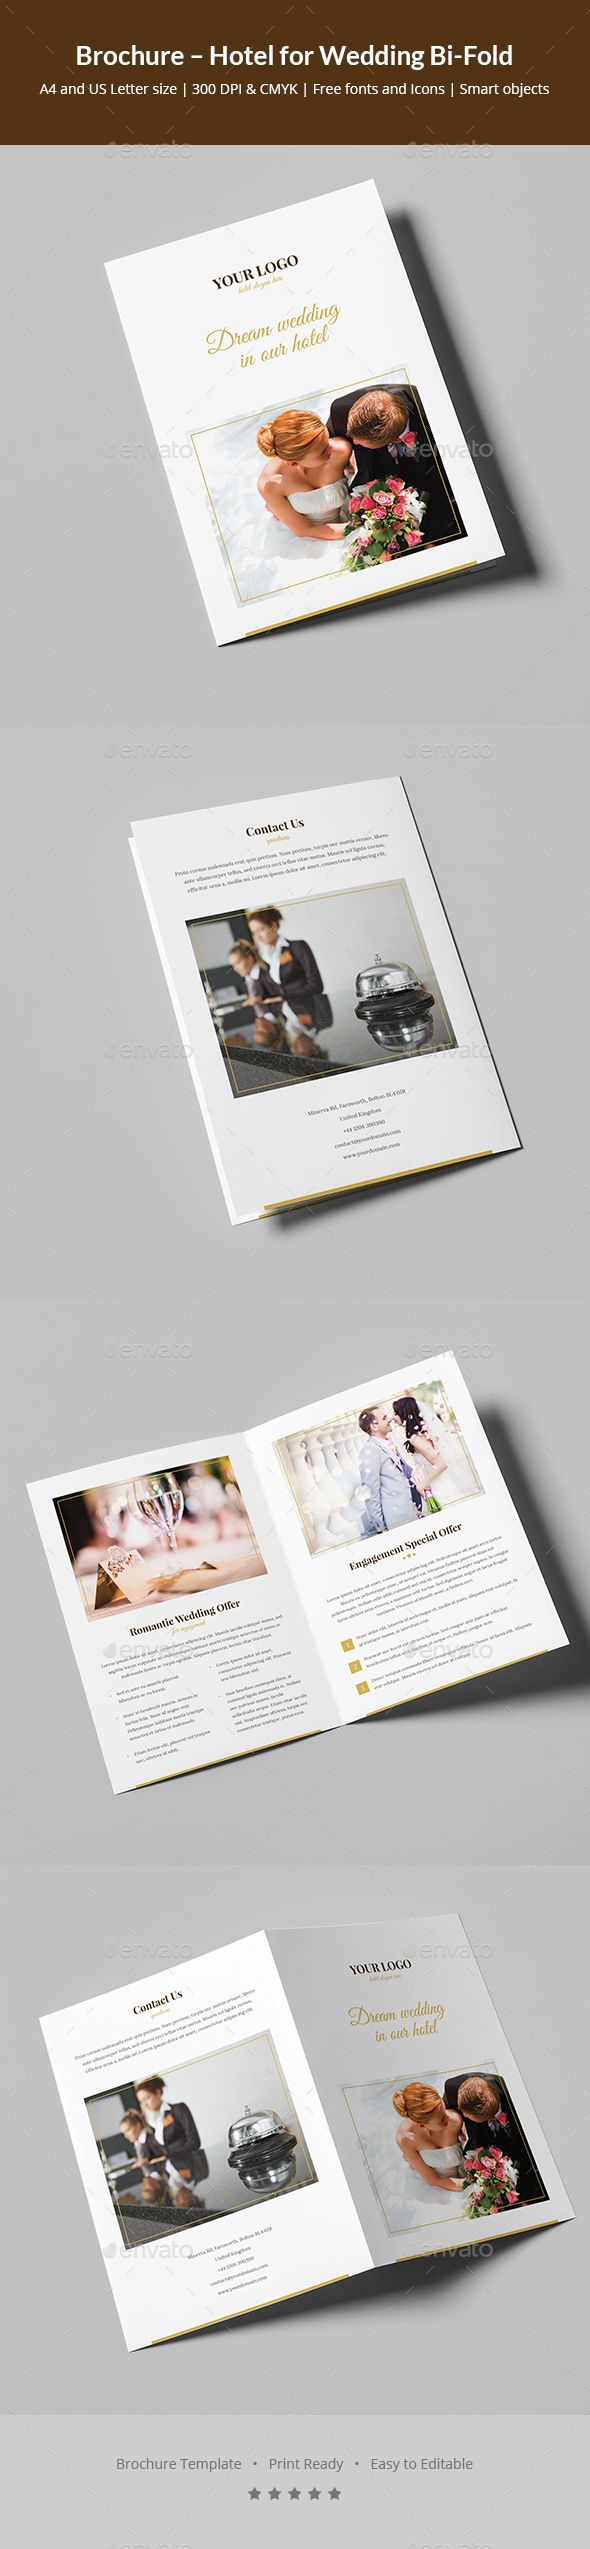 241 best GraphicRiver Templates images on Pinterest | Templates ...